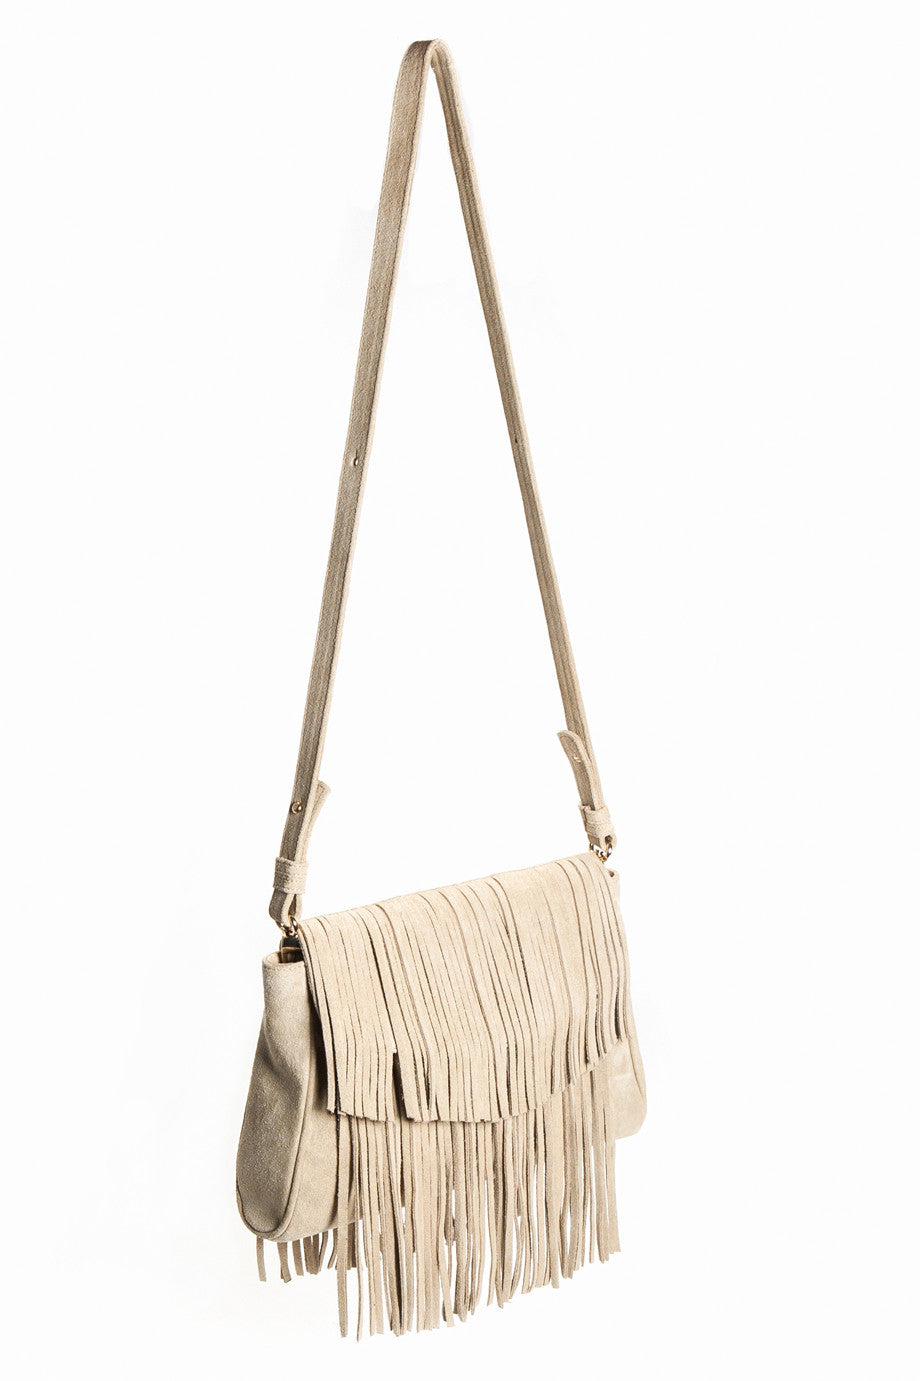 The 'June Moss' Beige Suede Fringe Handbag | Side View | Mel Boteri